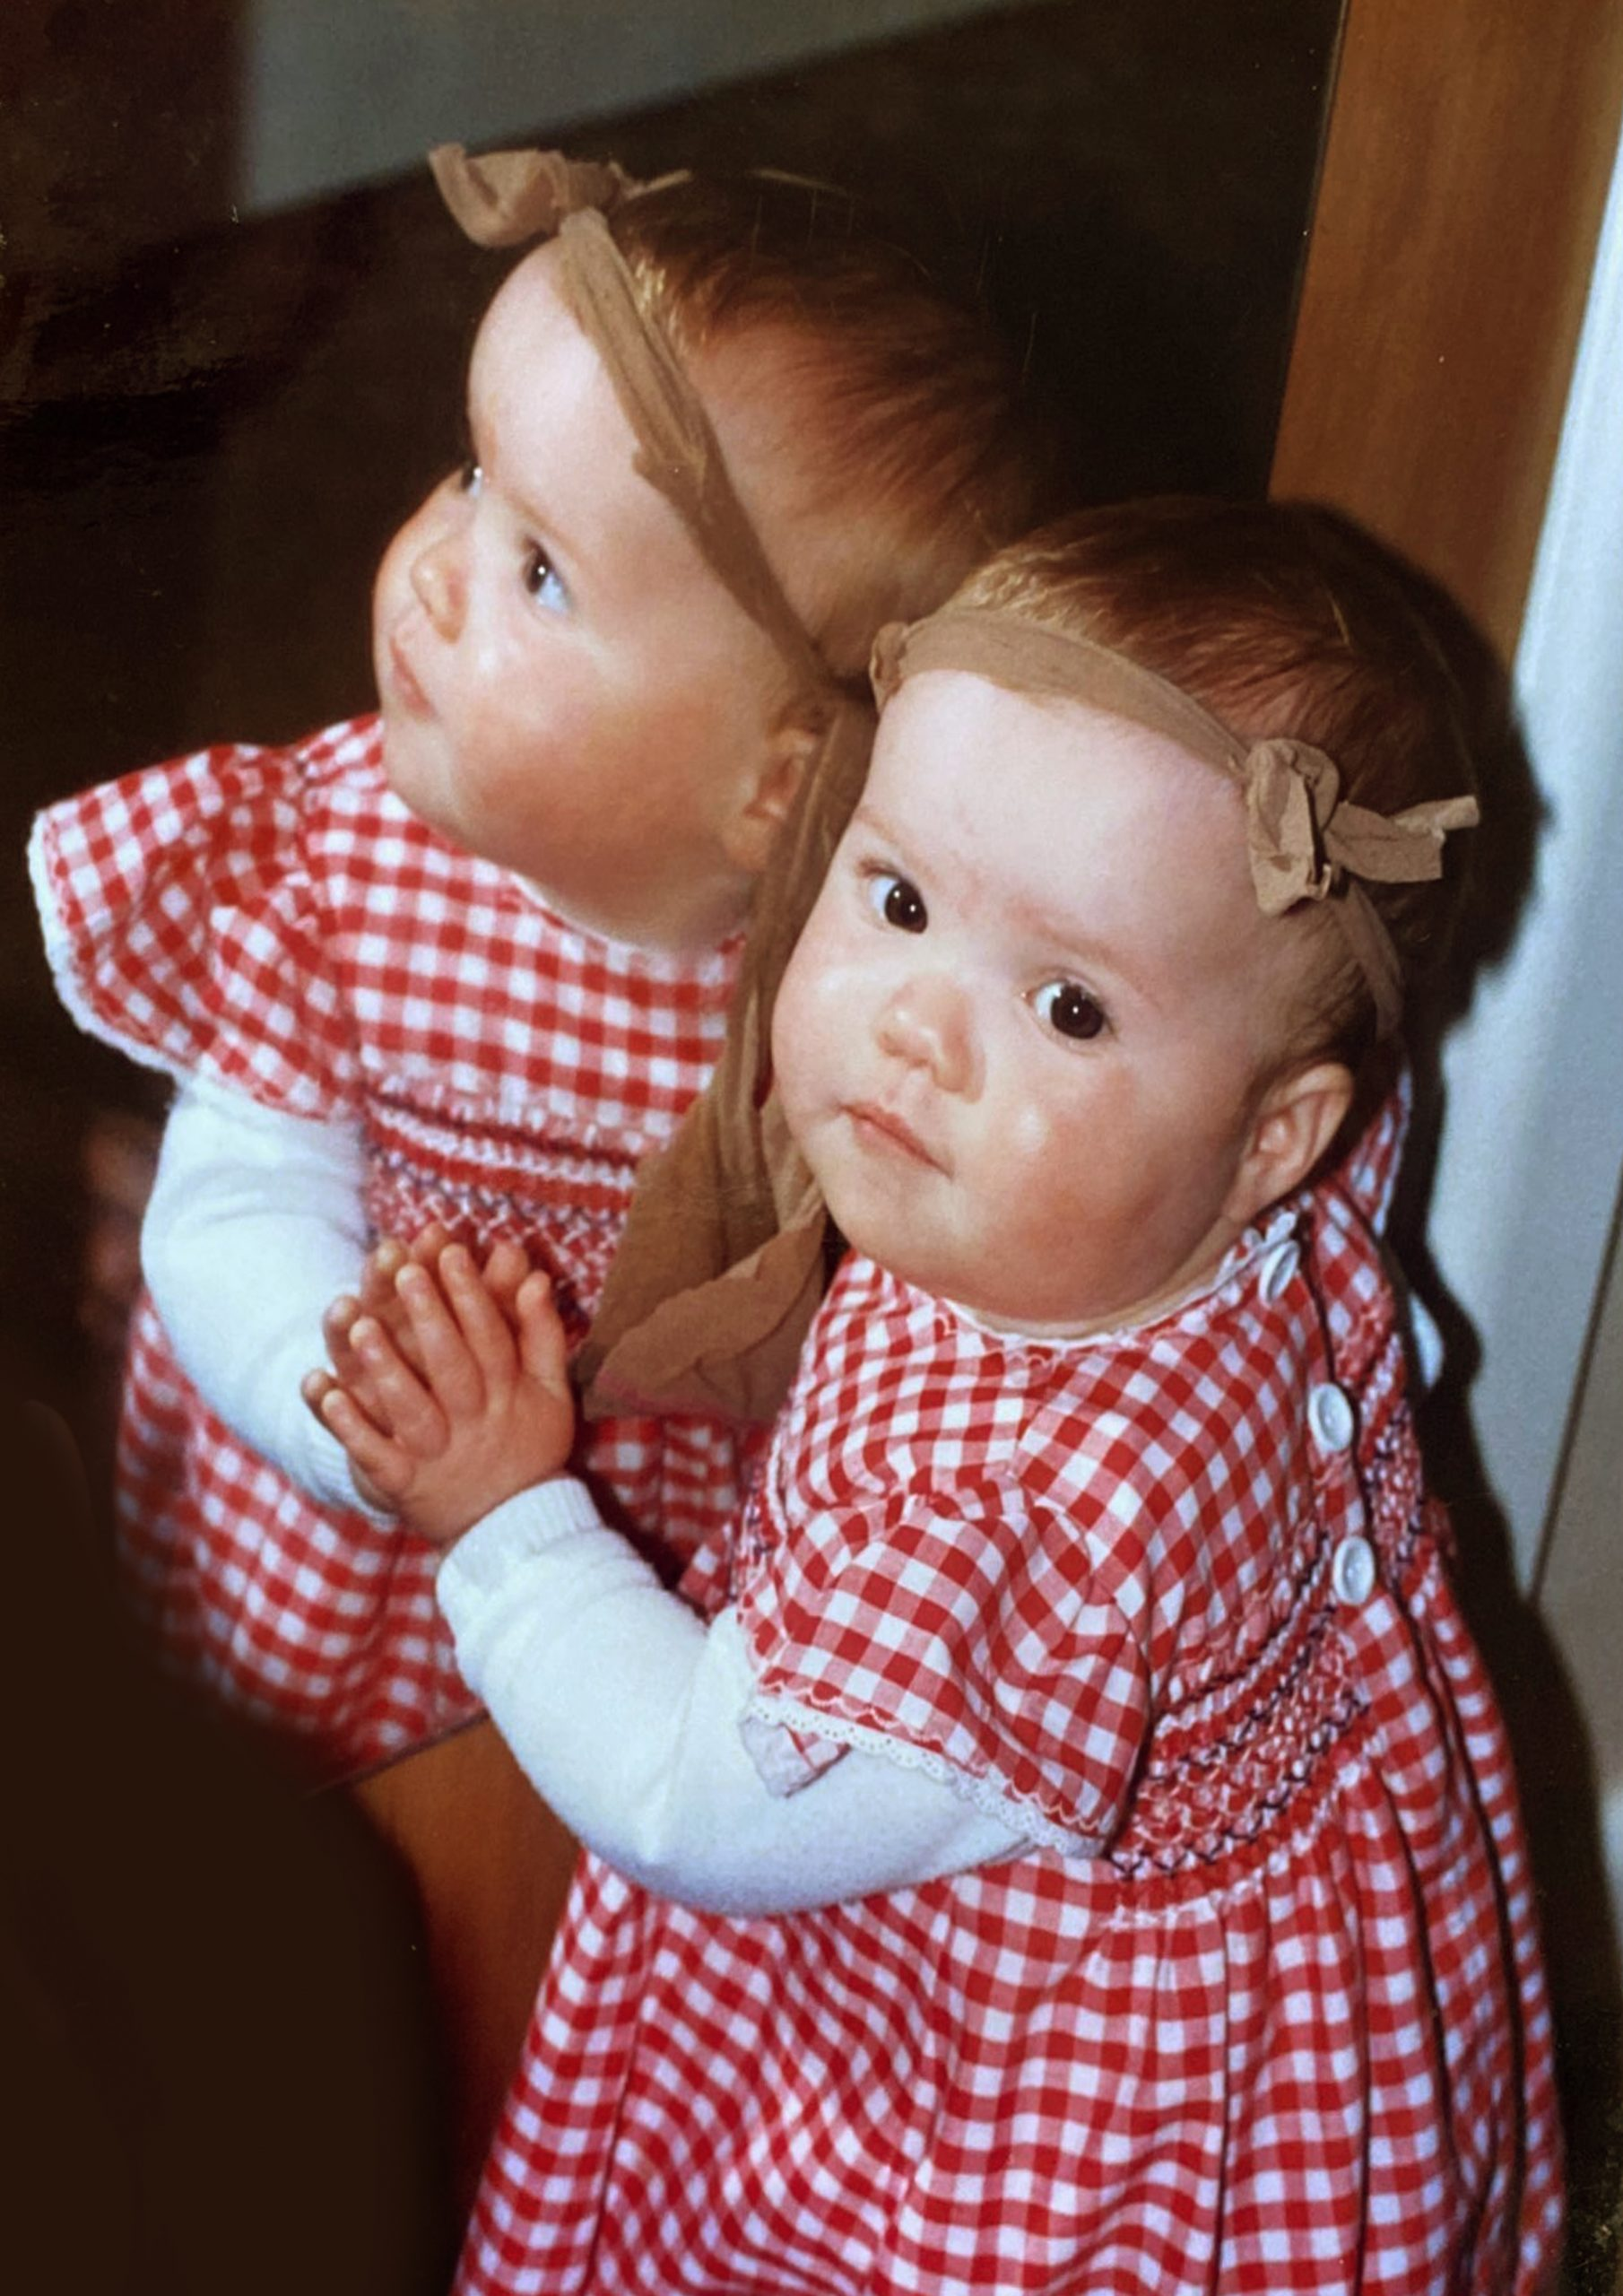 Clare as a baby reflected in a mirror wearing a red and white gingham top